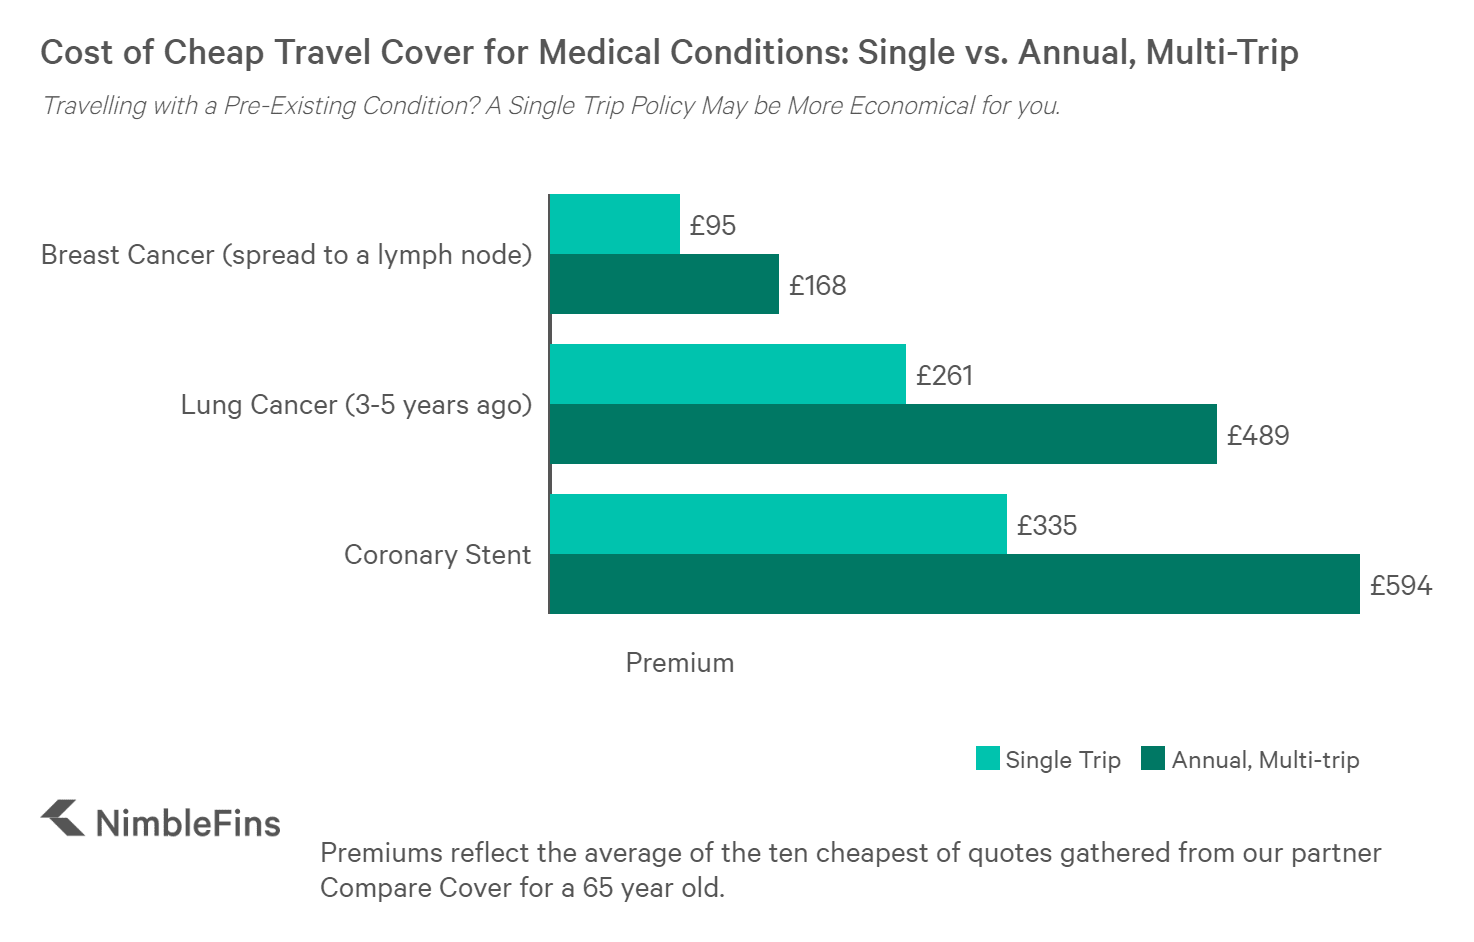 Chart comparing single and annual travel insurance policies for pre-existing medical conditions: breast cancer, lung cancer and stent